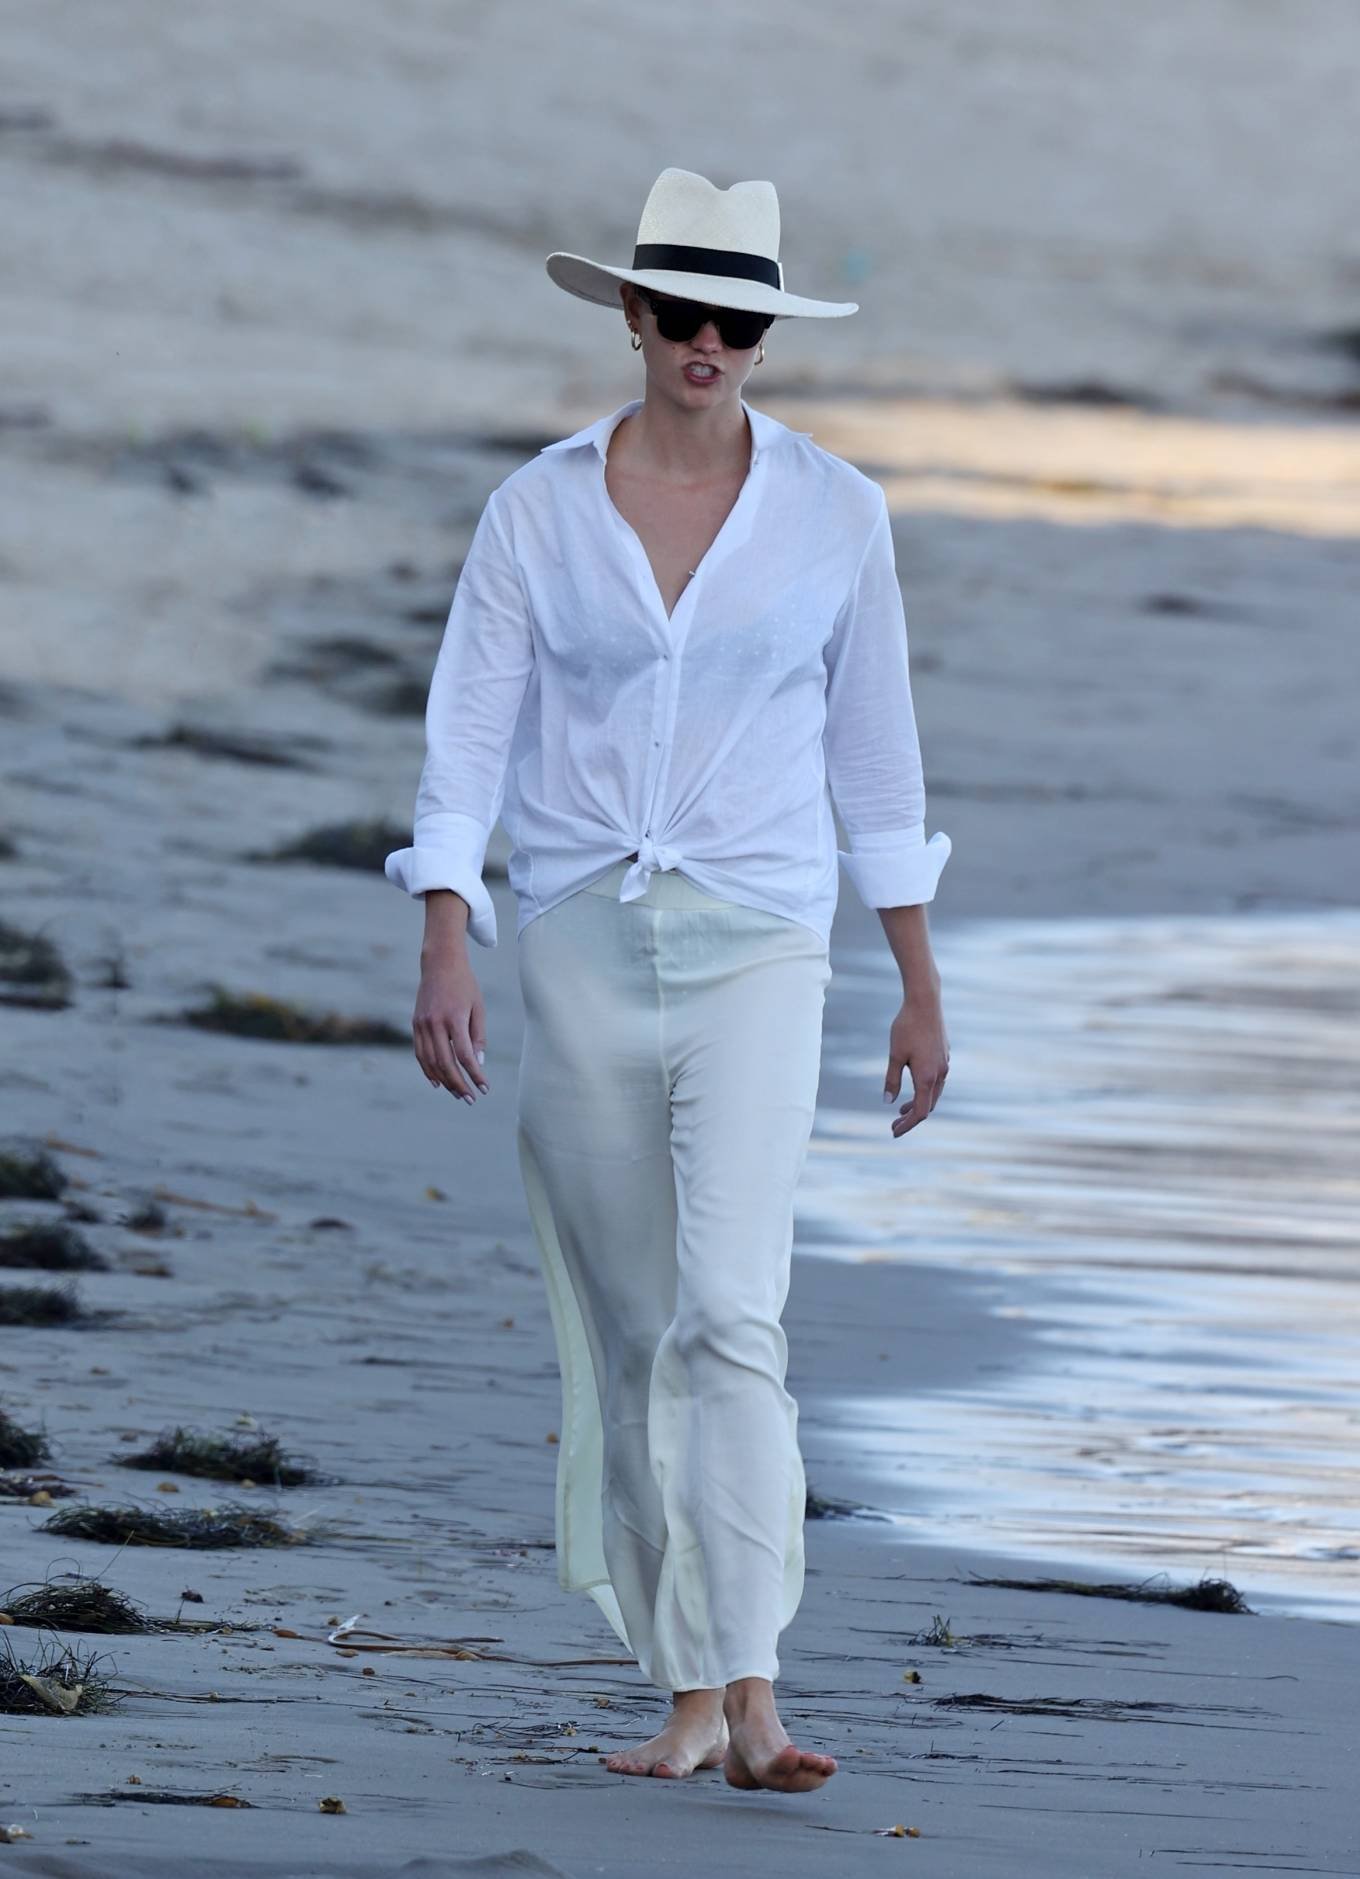 Karlie Kloss - Pictured on the beach in Santa Monica